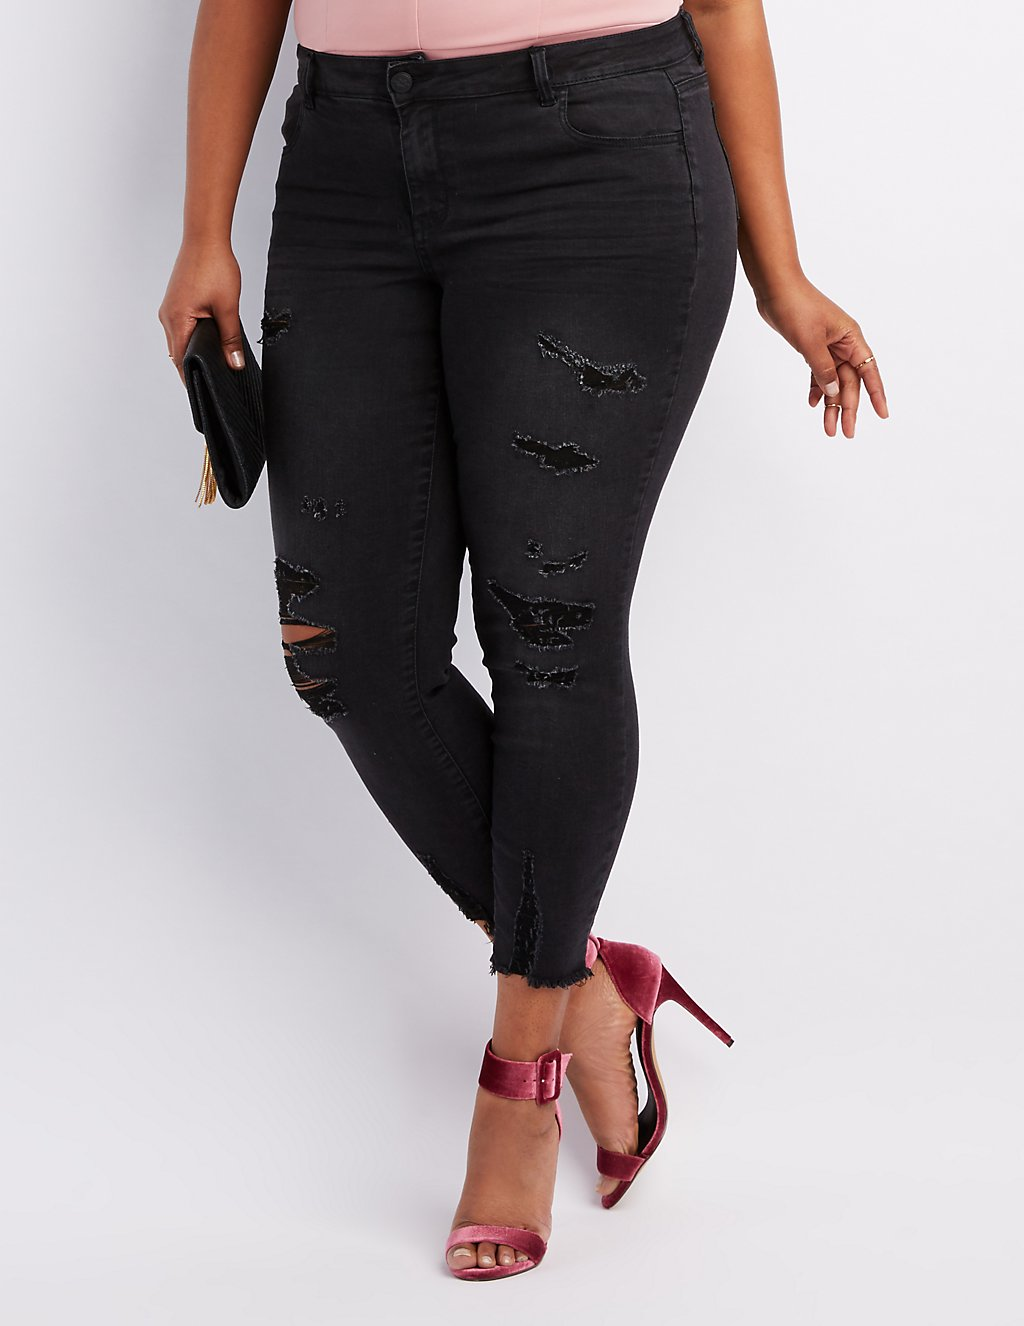 277ae7bf13d ShopandBox - Buy Plus Size Refuge Skin Tight Legging Jeans from US